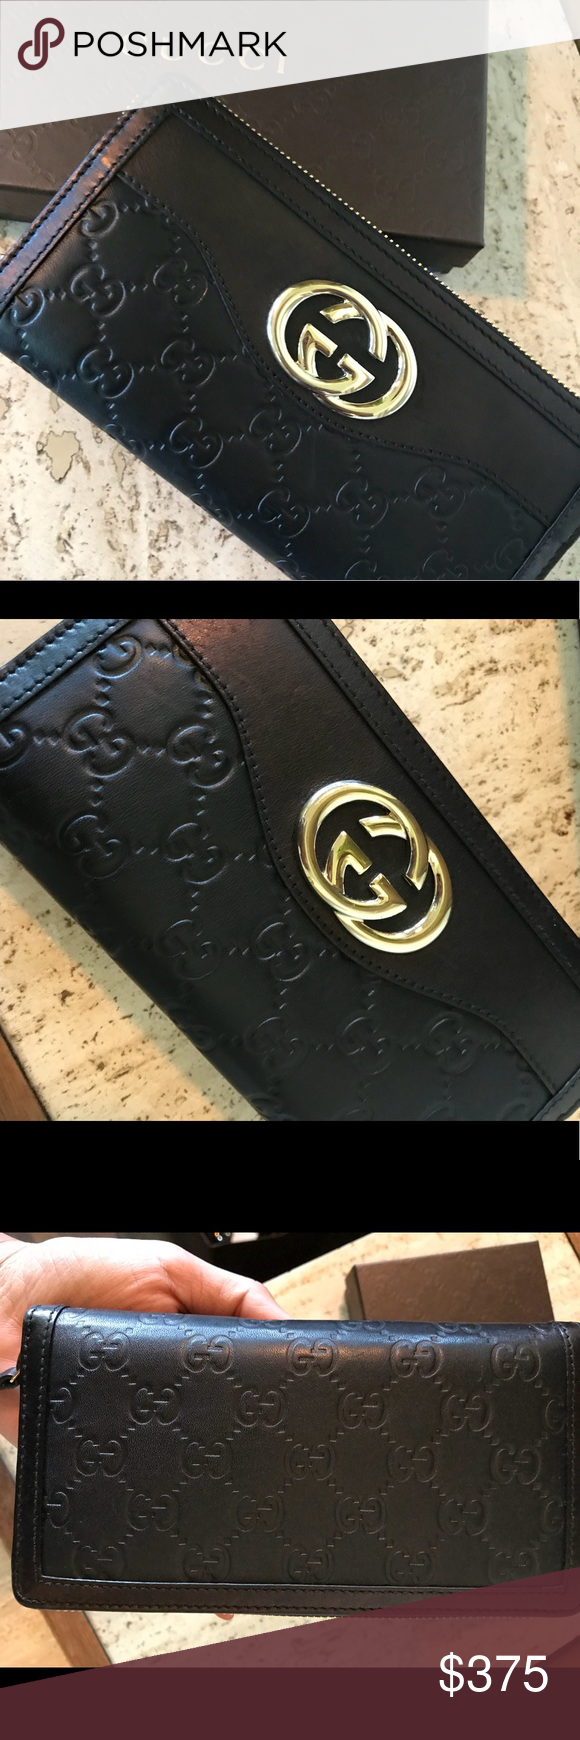 "fbd283df24c3 Gucci Guccissima Sukey ZIP Around Wallet Black embossed leather Light gold  interlocking GG logo and zipper Length 7.5"" Width 1"" Height 4"" Gucci Bags  Wallets"